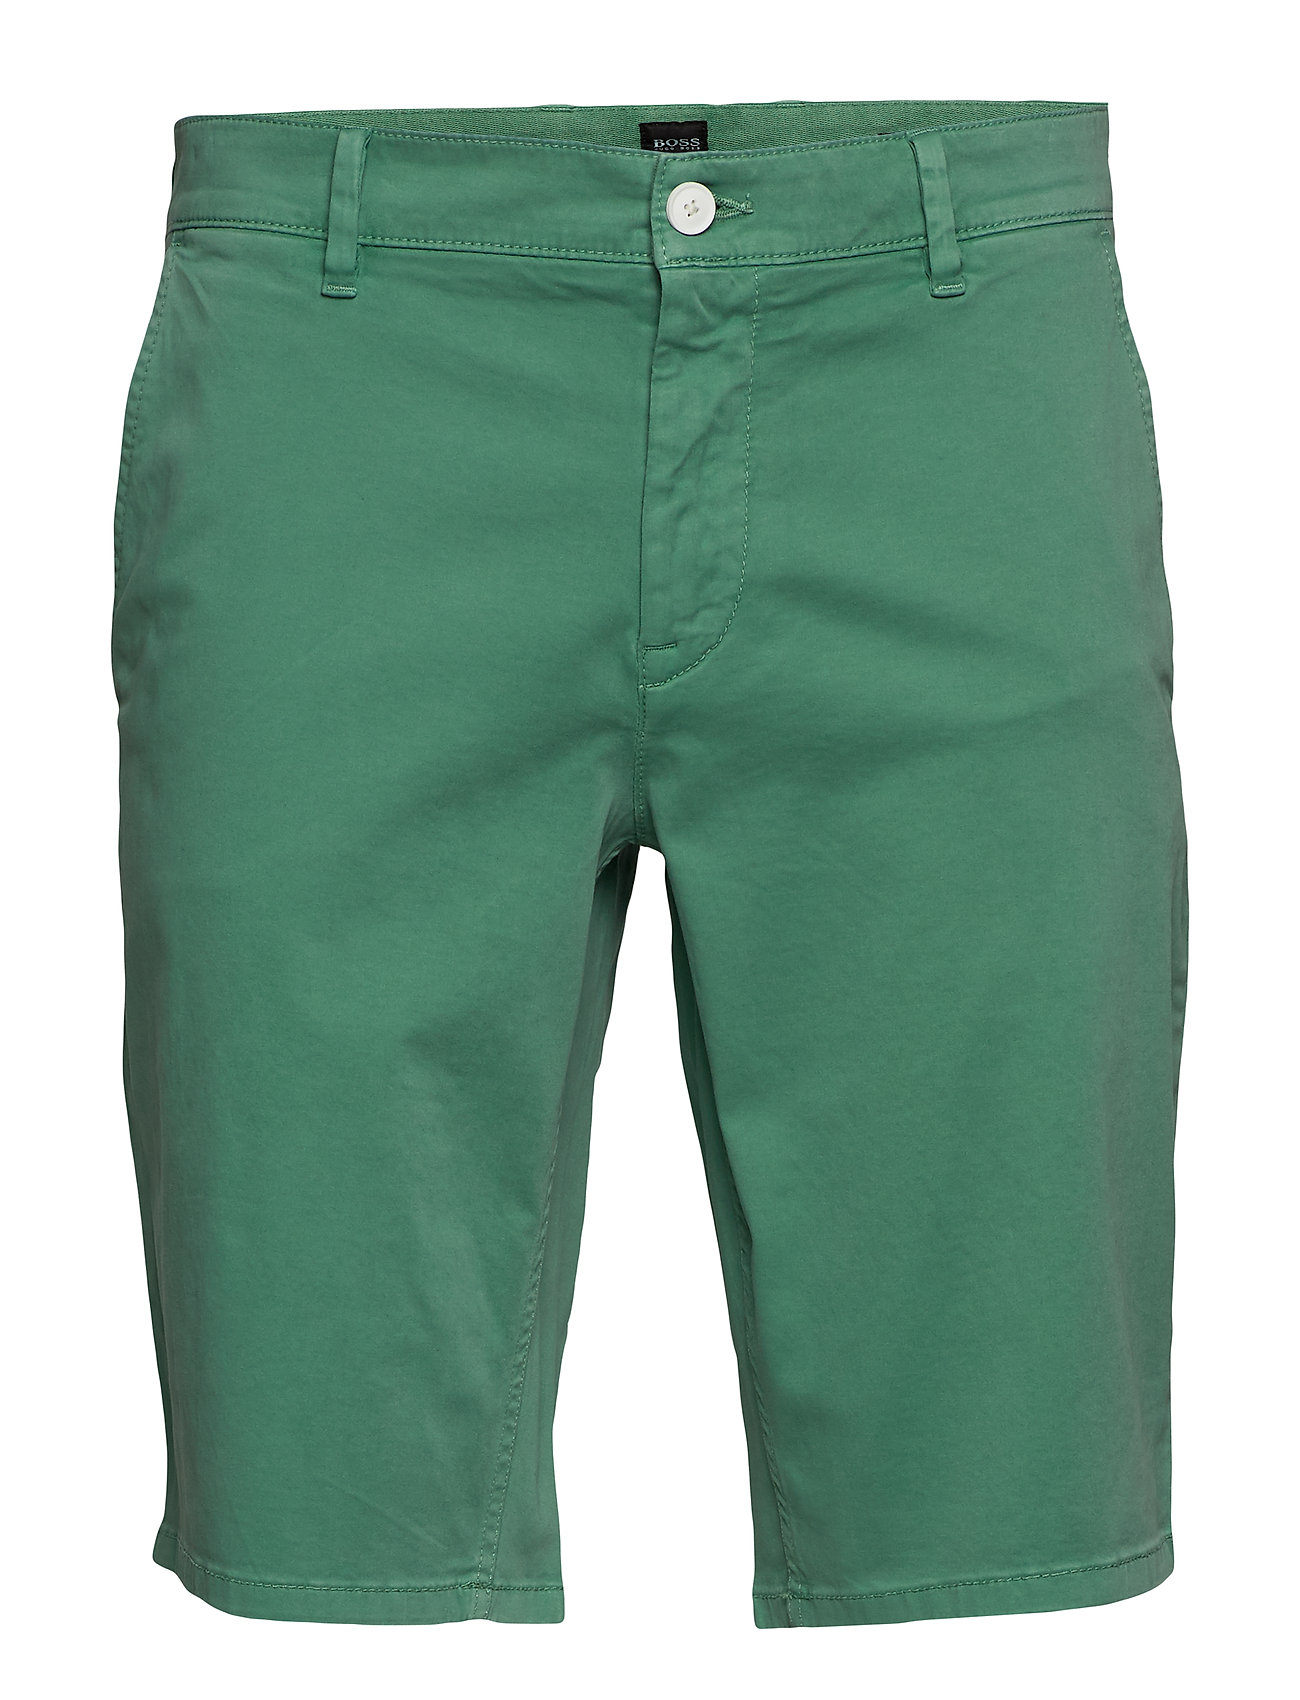 aeb6610e Schino-slim Shorts (Open Green) (899 kr) - Boss Casual Wear ...